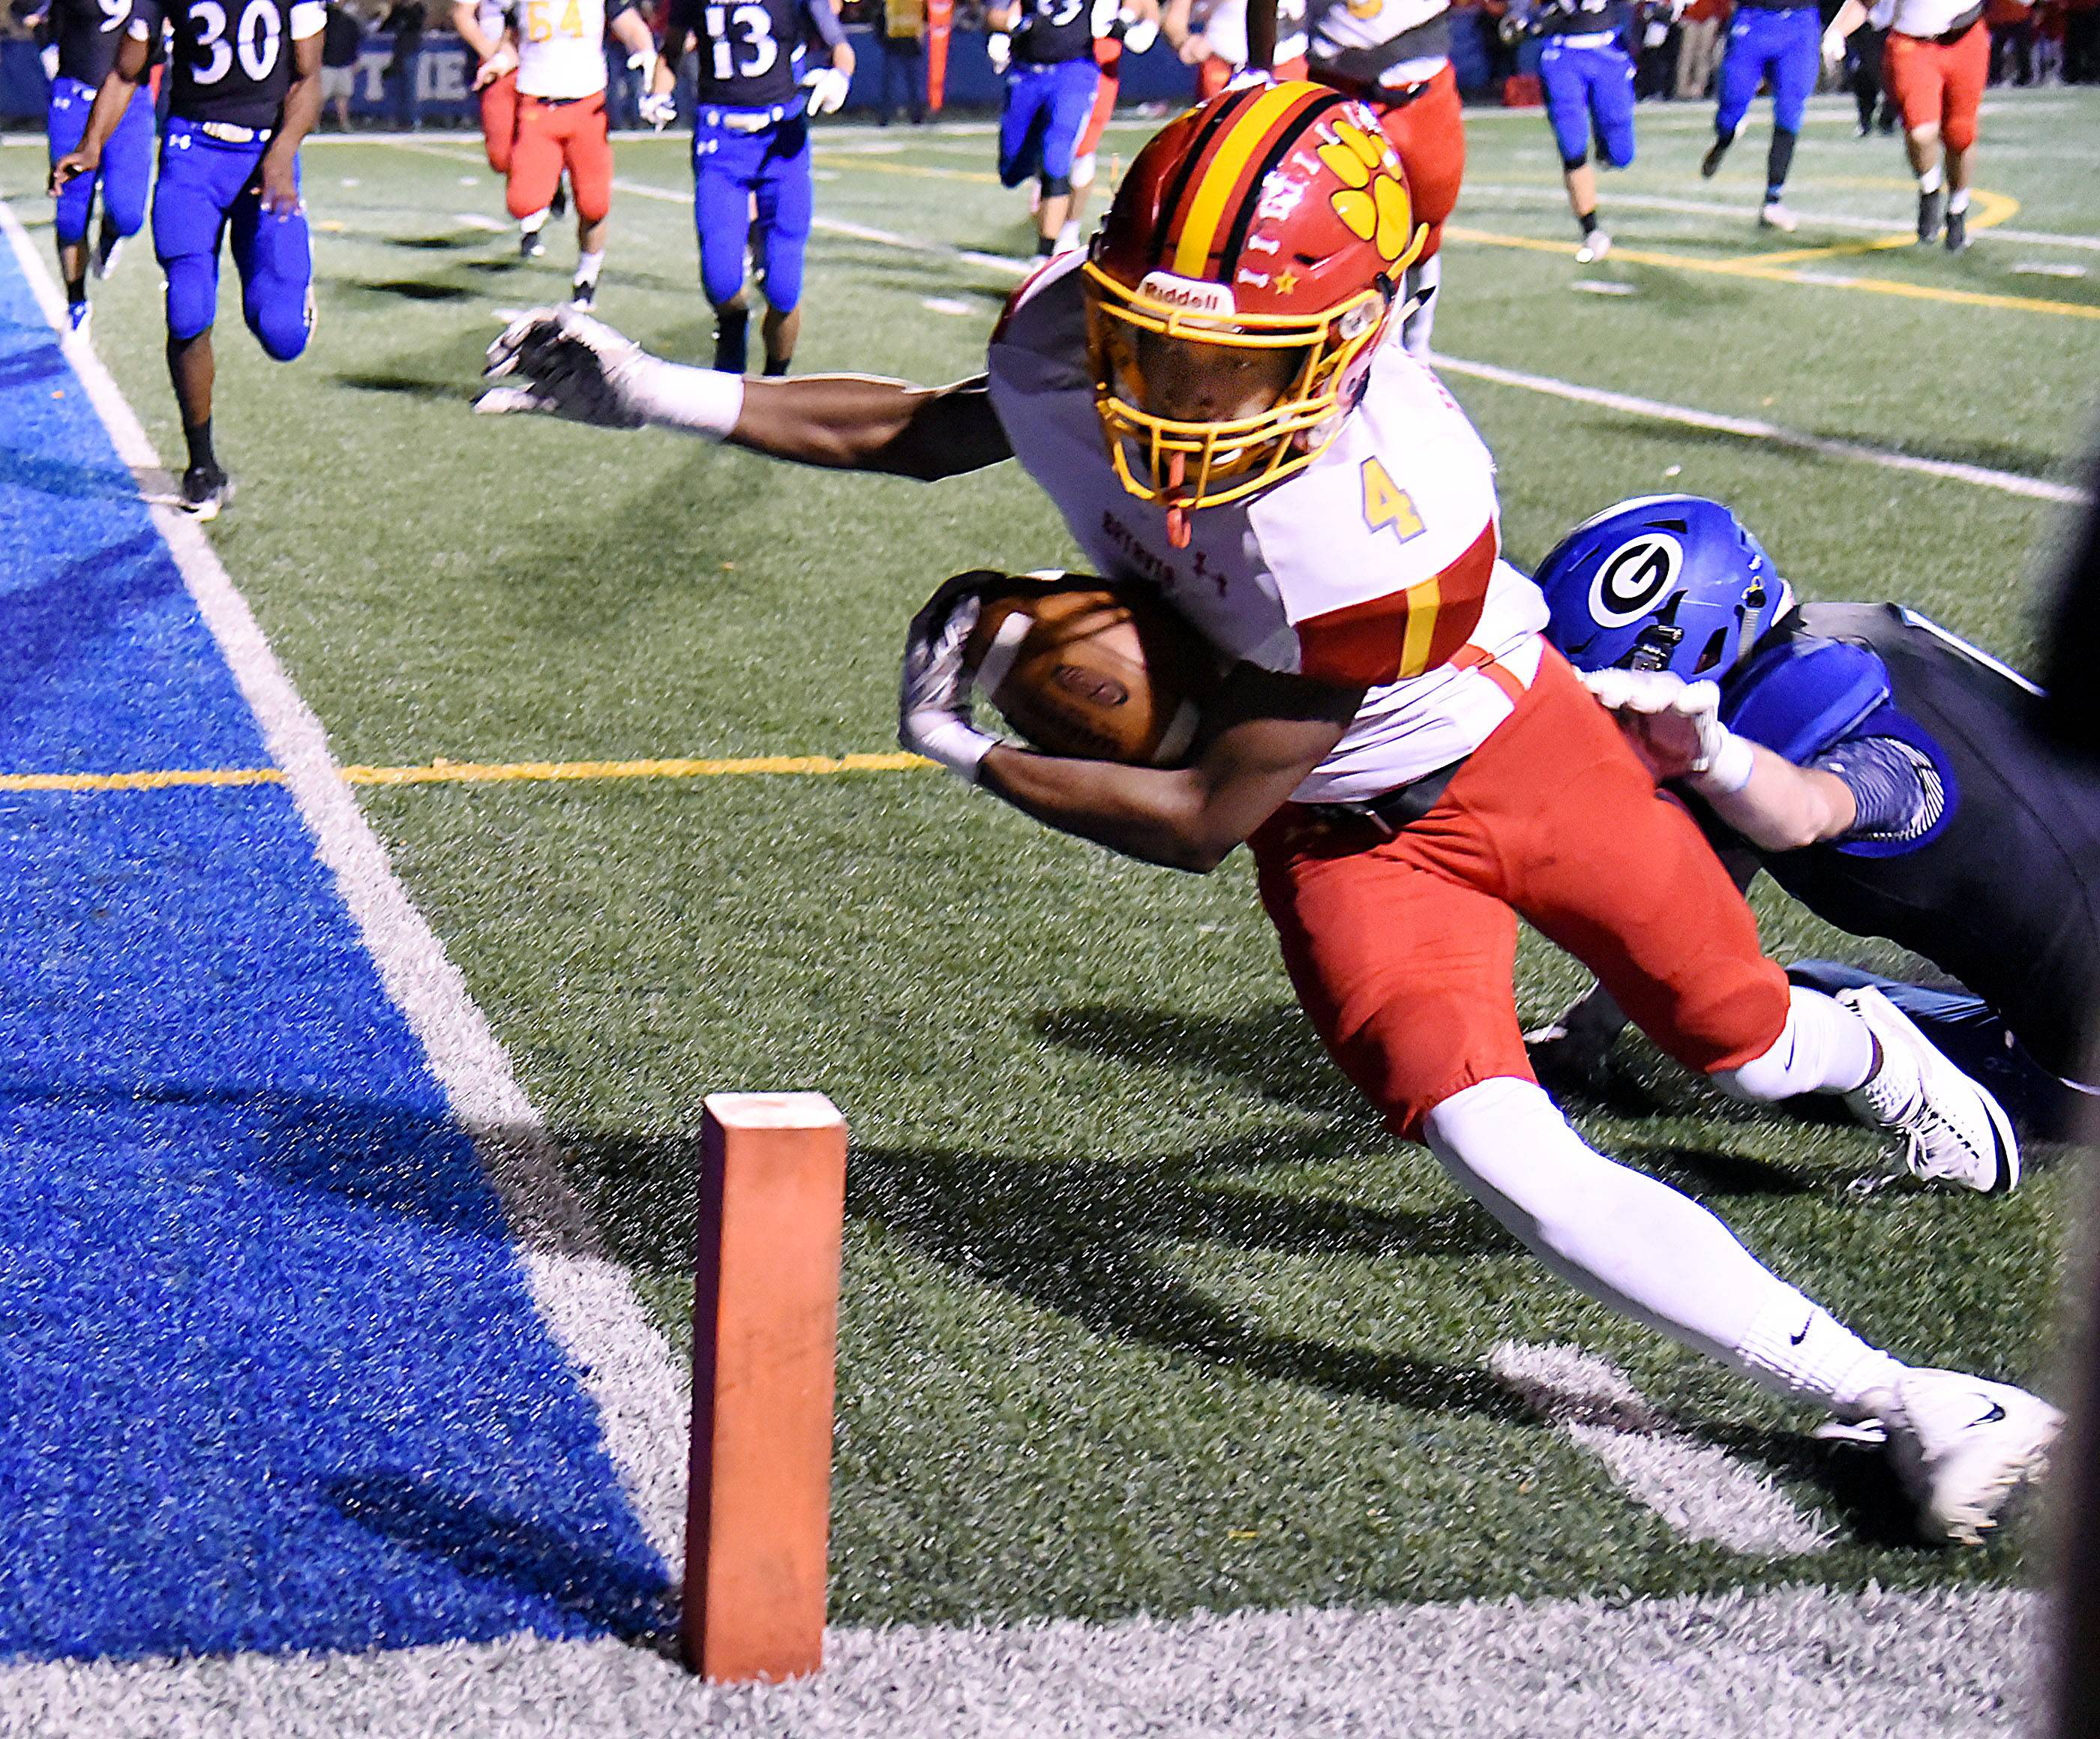 Batavia's Reggie Phillips gets the ball over the goal line before going out-of-bounds in the first half against Geneva Friday in Geneva.